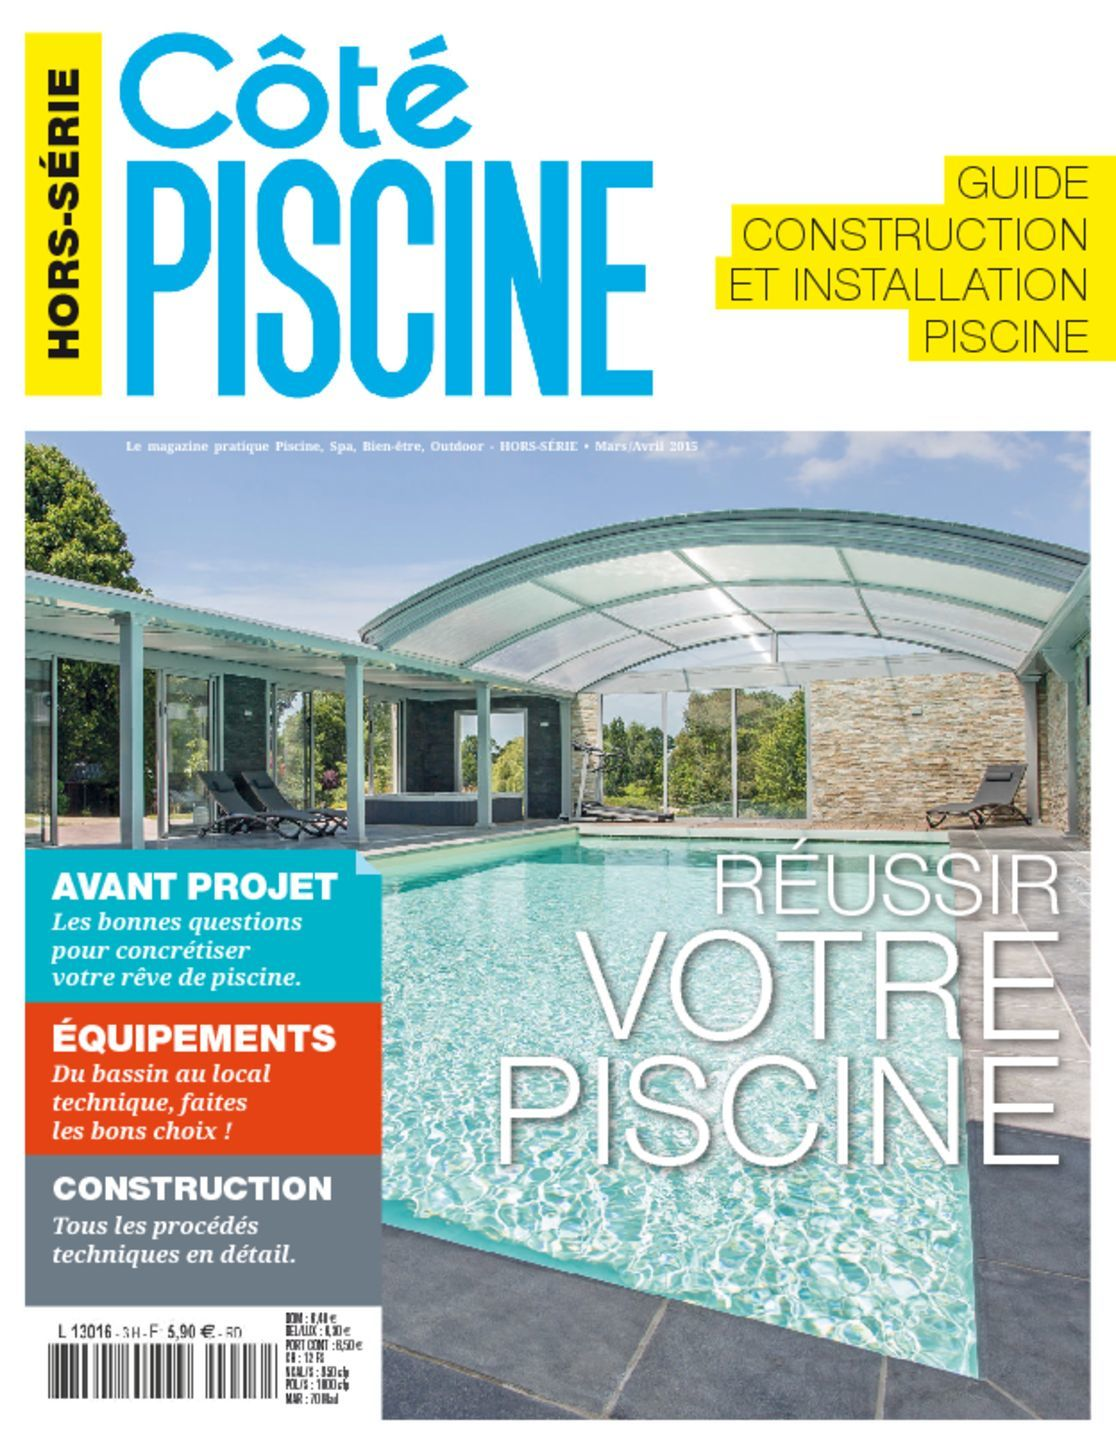 Guide construction et installation piscine magazine for Construction piscine